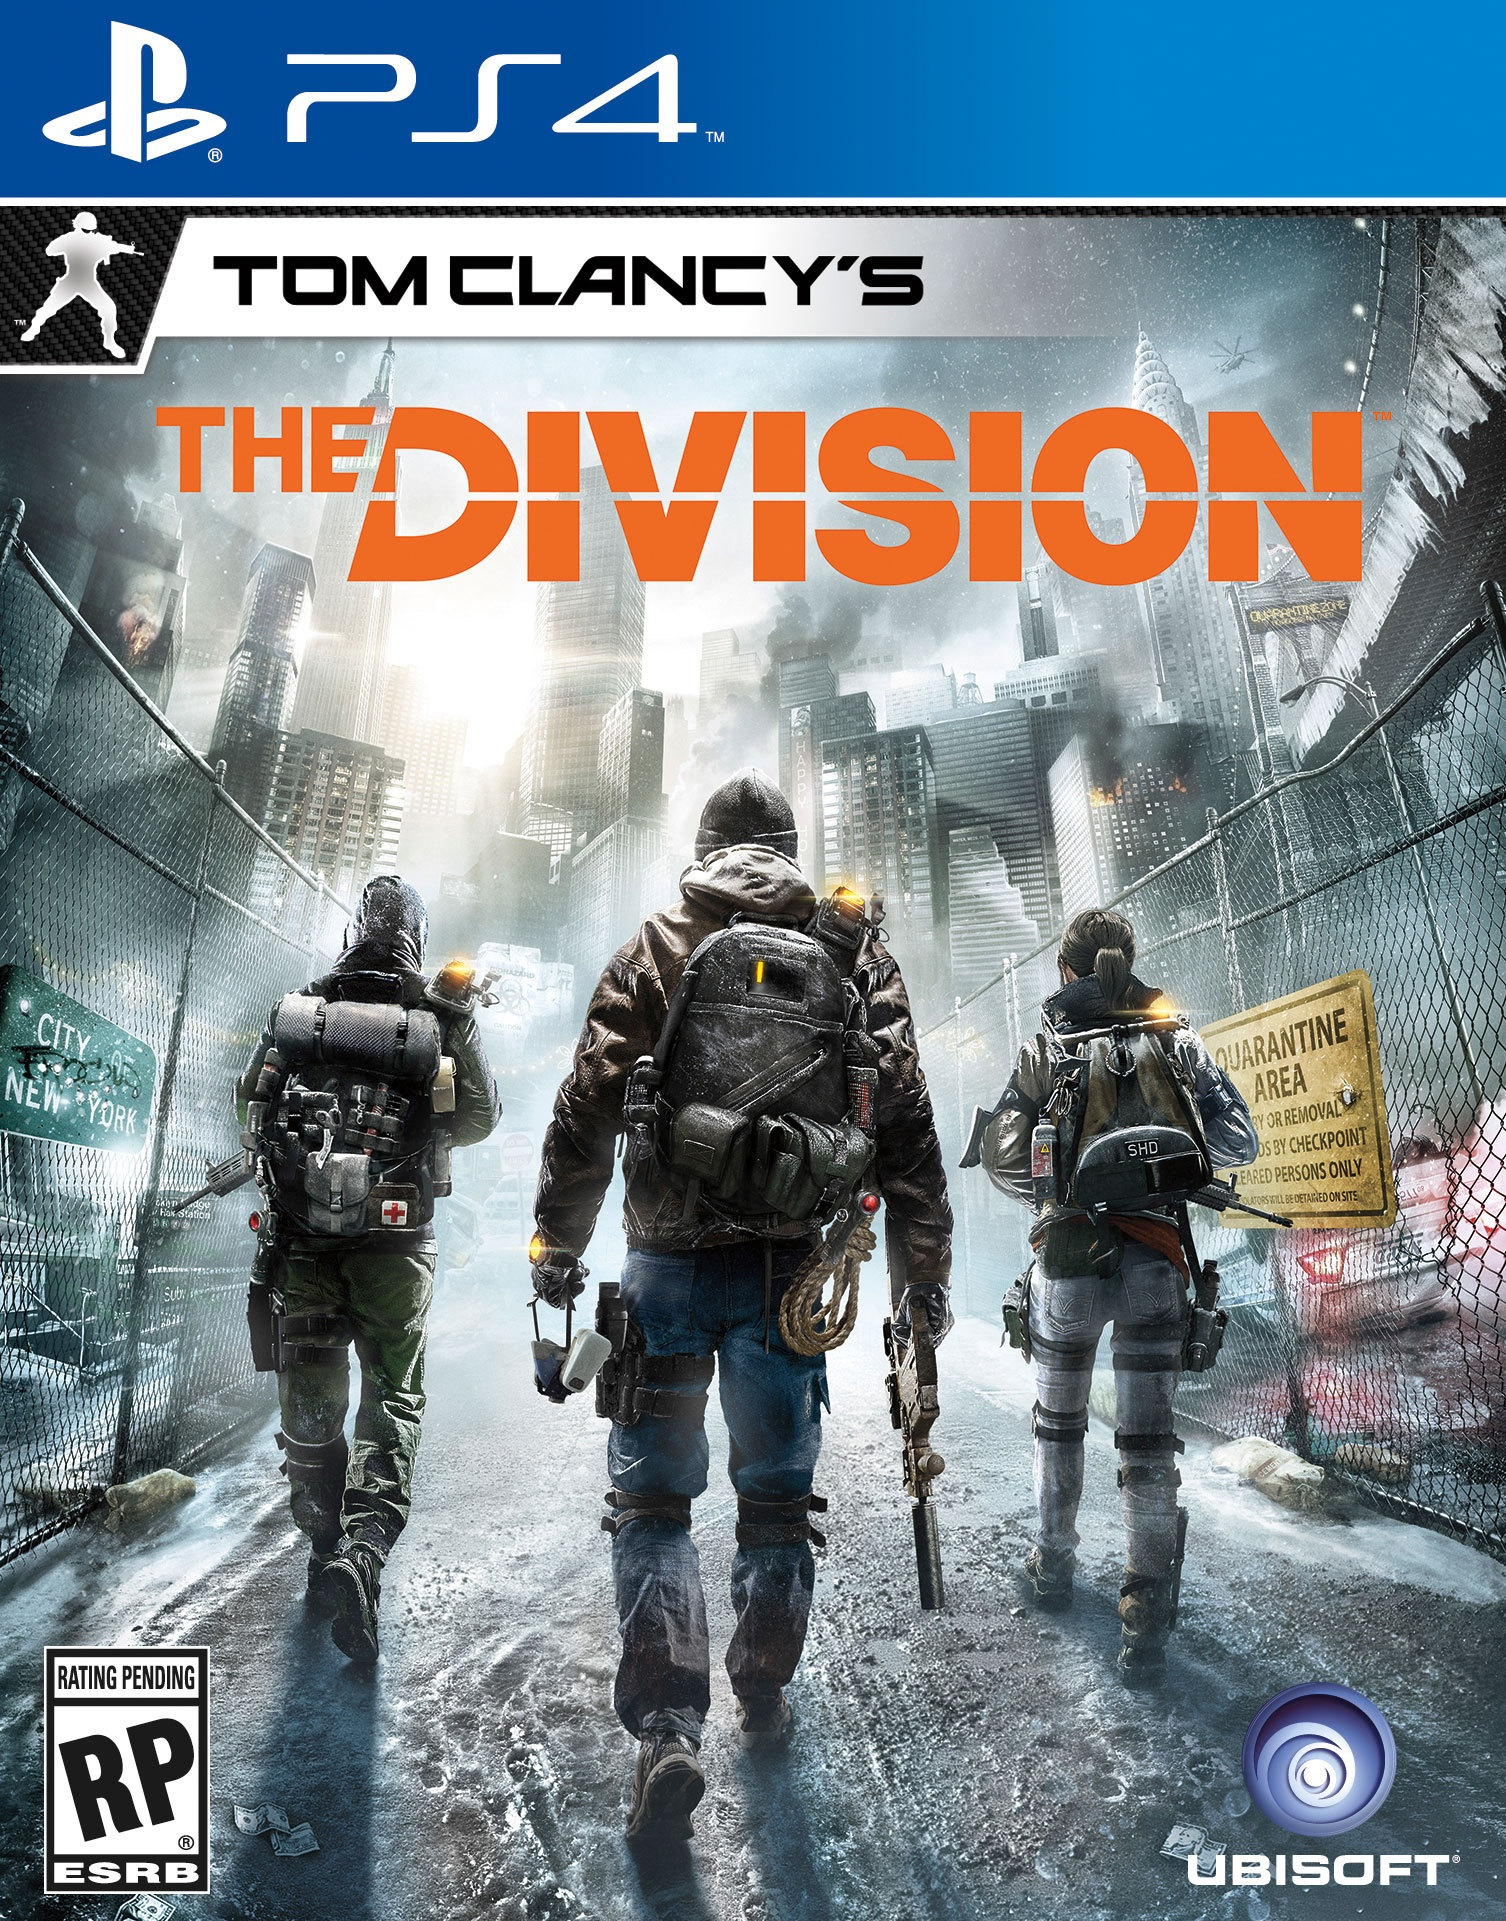 tom-clancys-the-division_qp2g